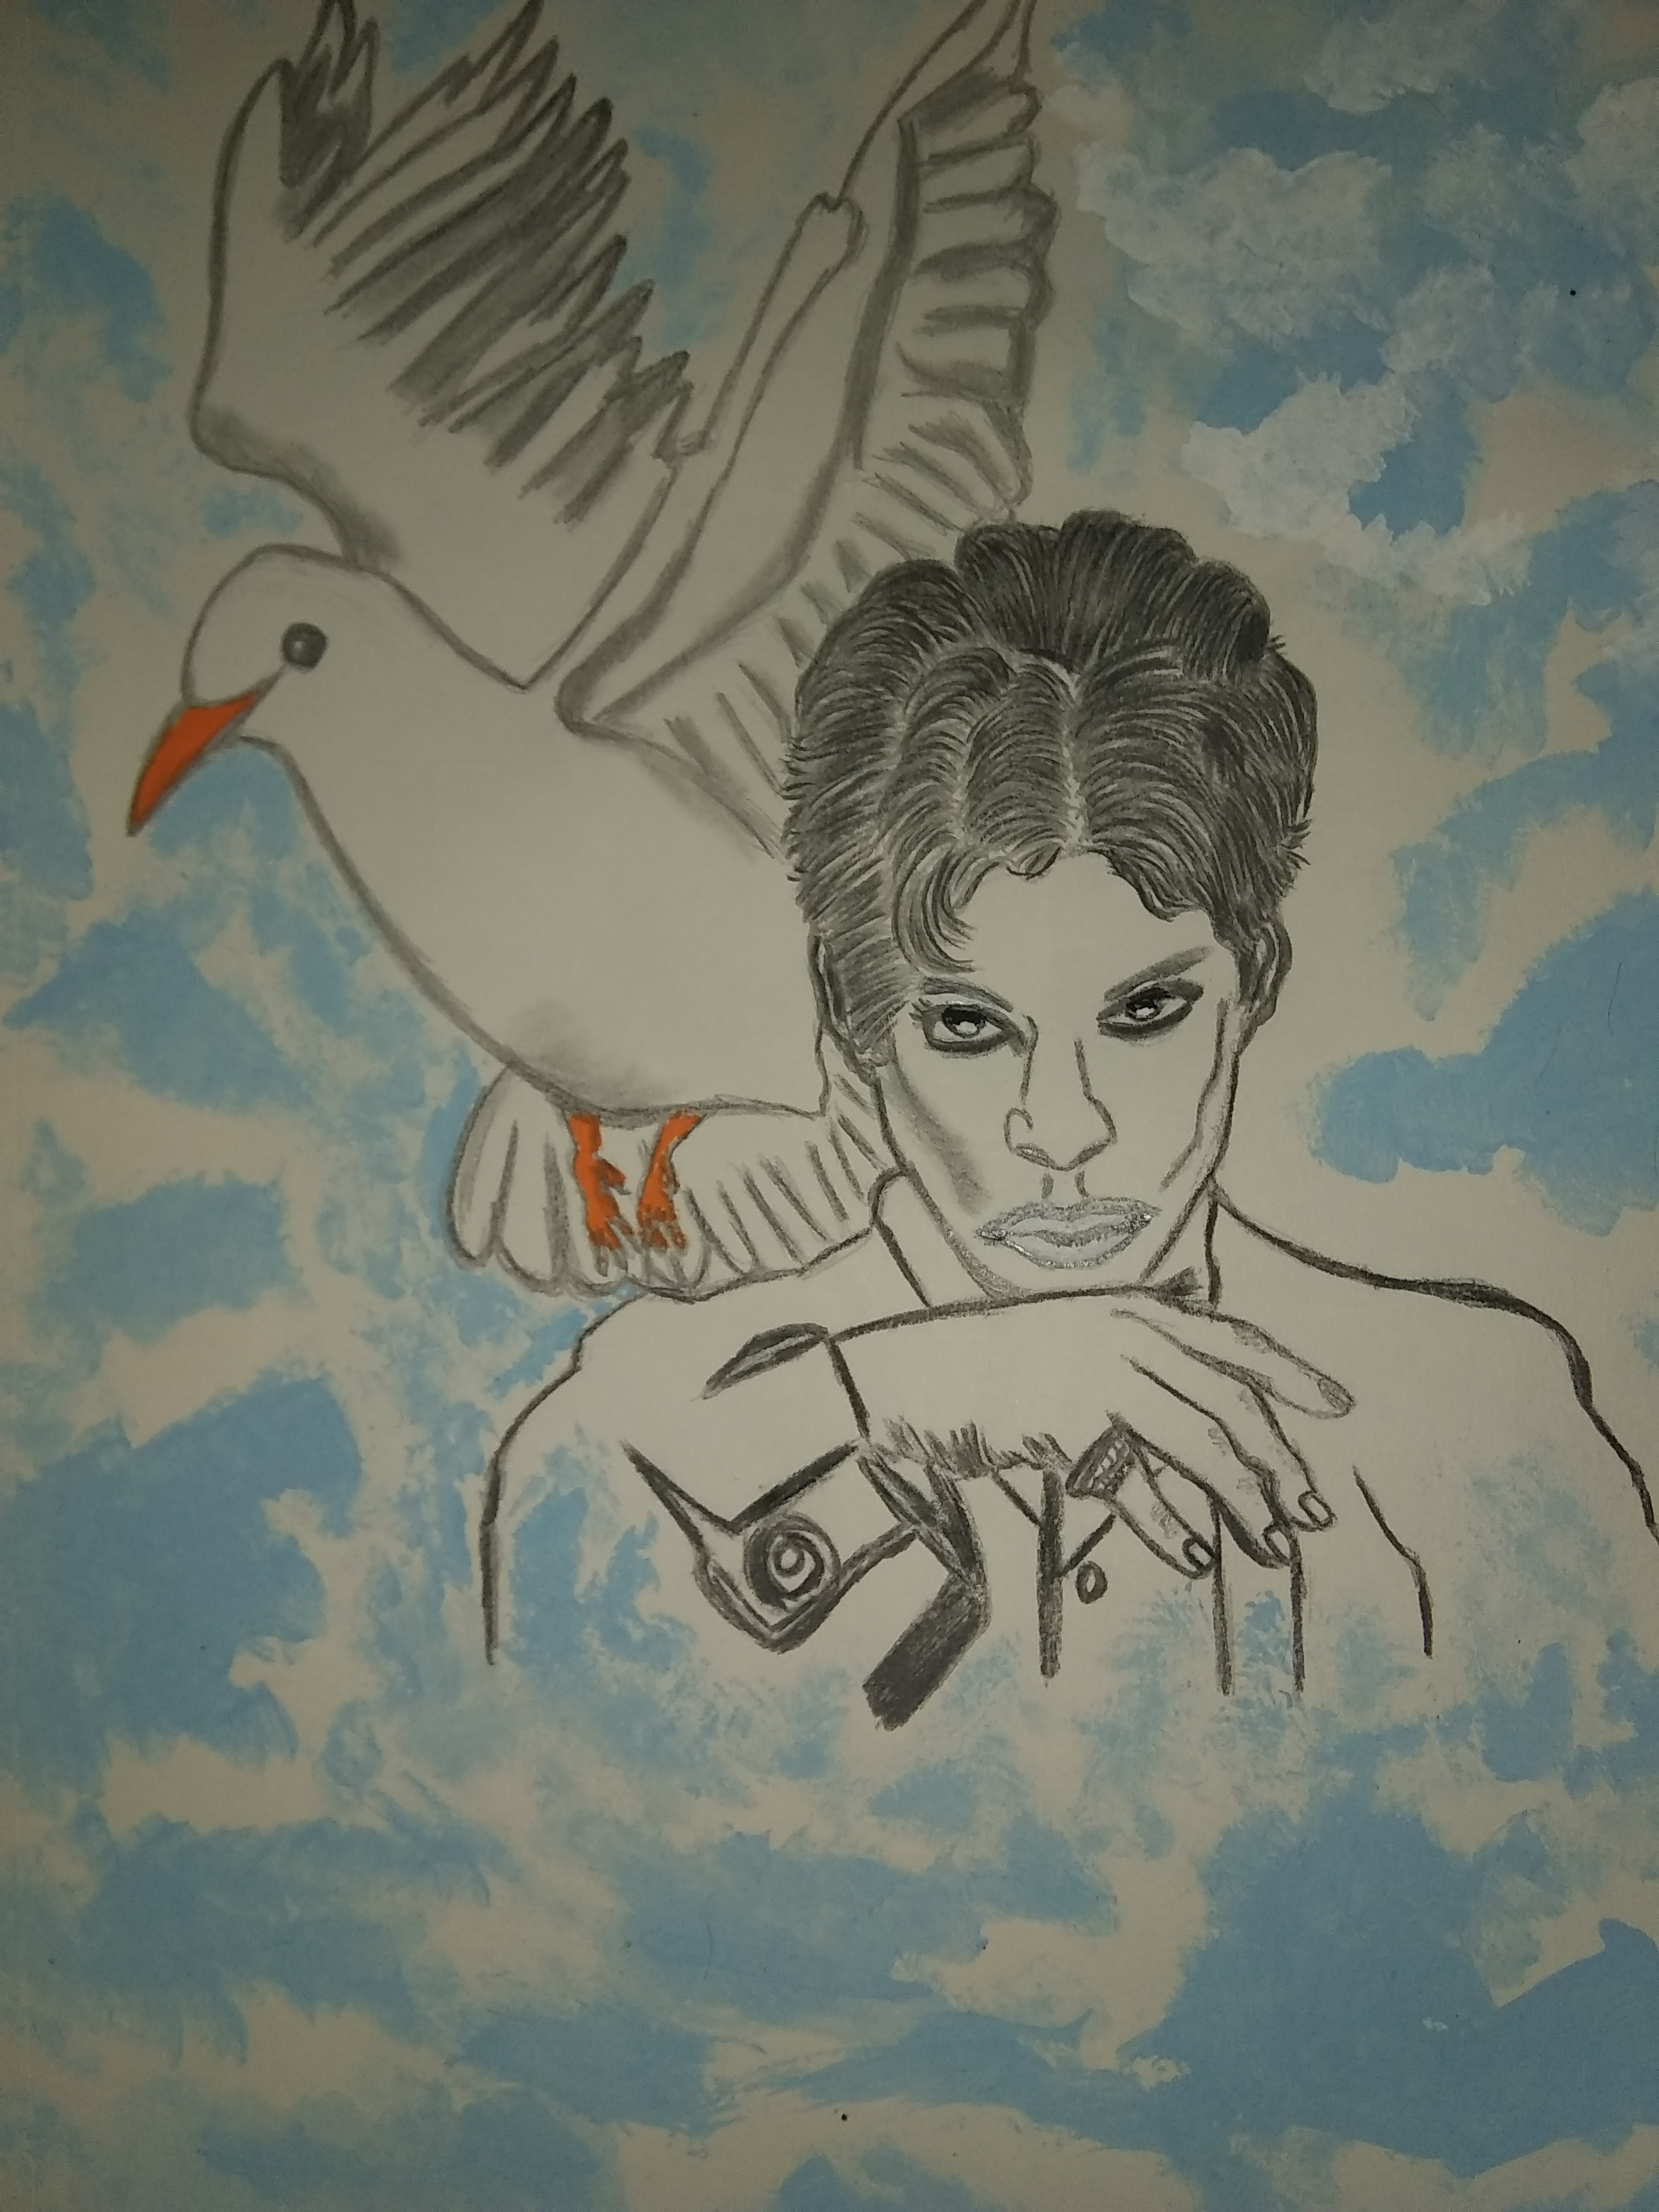 Prince, celebrity, singer, musician, drawing, painting, portrait, mixed media, modern, Dove, birds, people